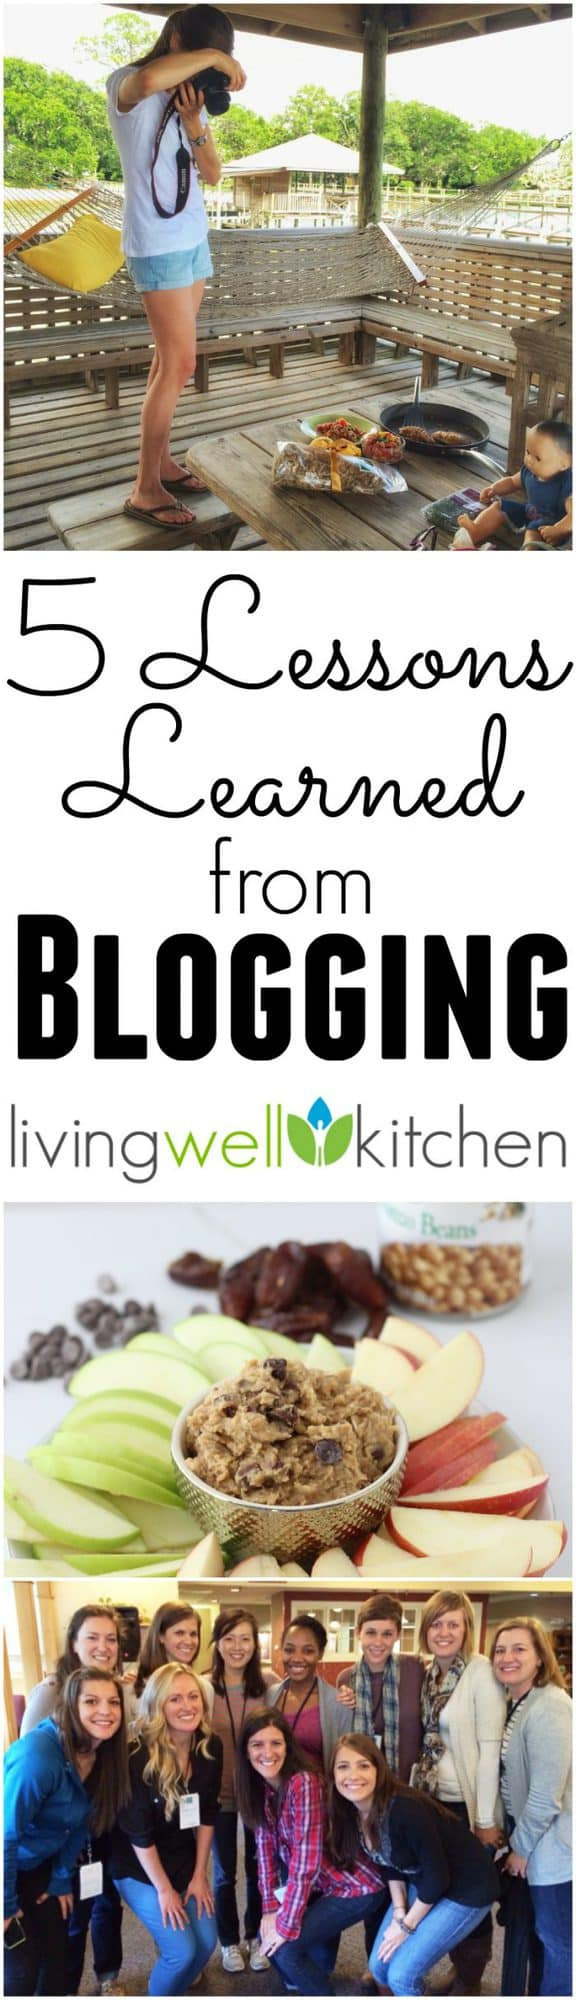 Living Well Kitchen celebrates its 5th birthday! Check out the 5 Lessons Learned from Blogging for five years in this post with a Facebook Live video